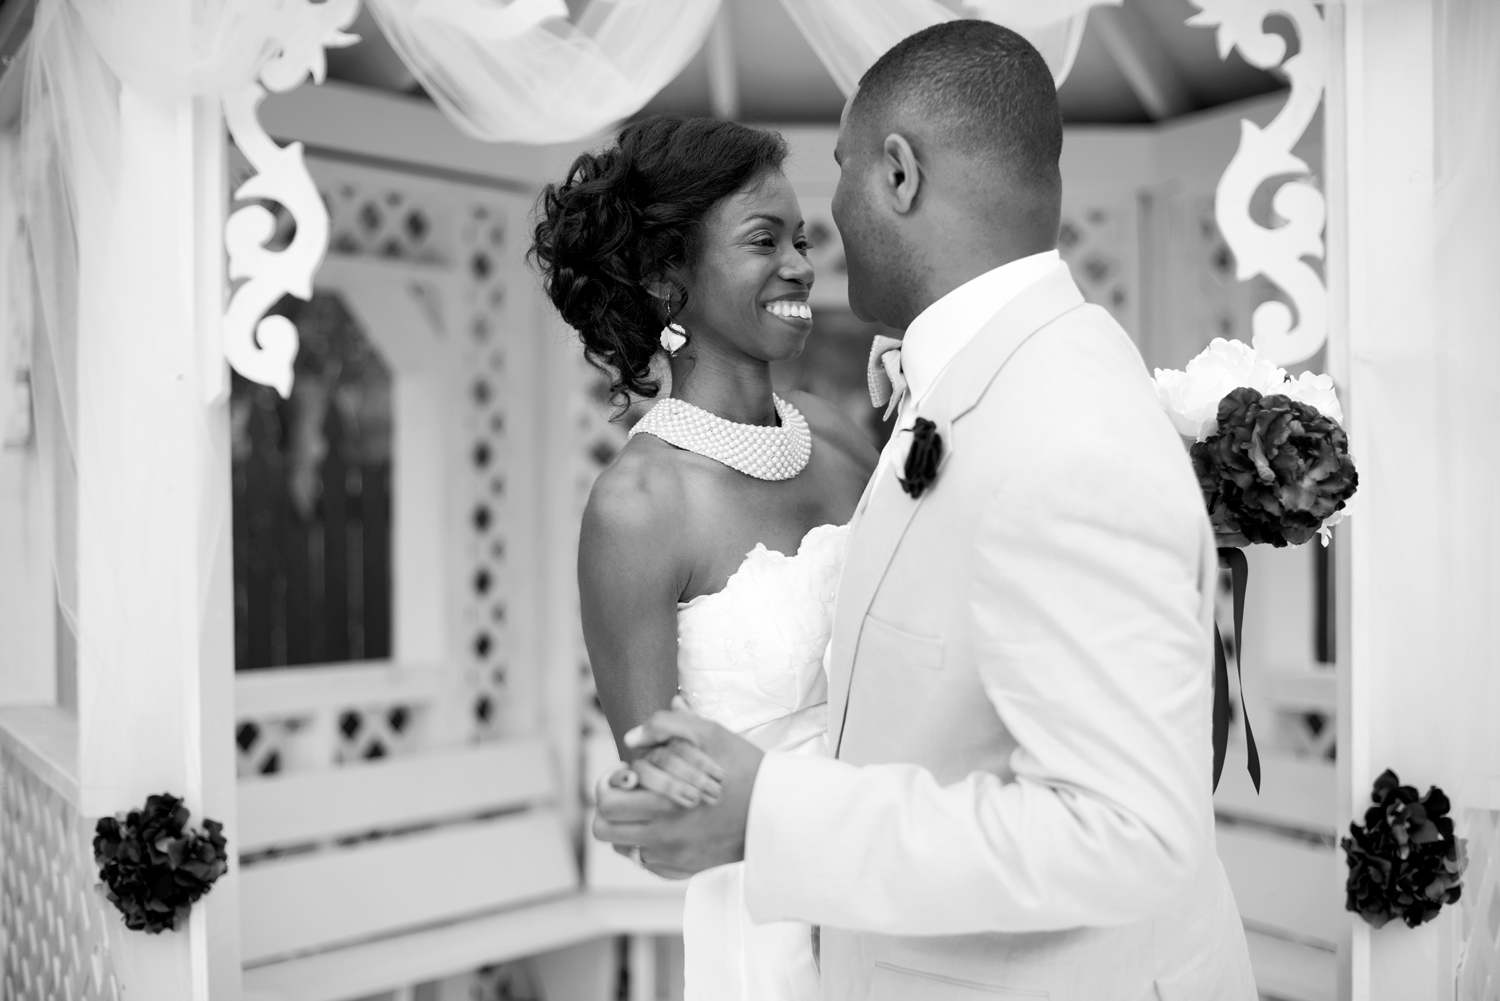 Bride and groom share a sweet moment after their wedding